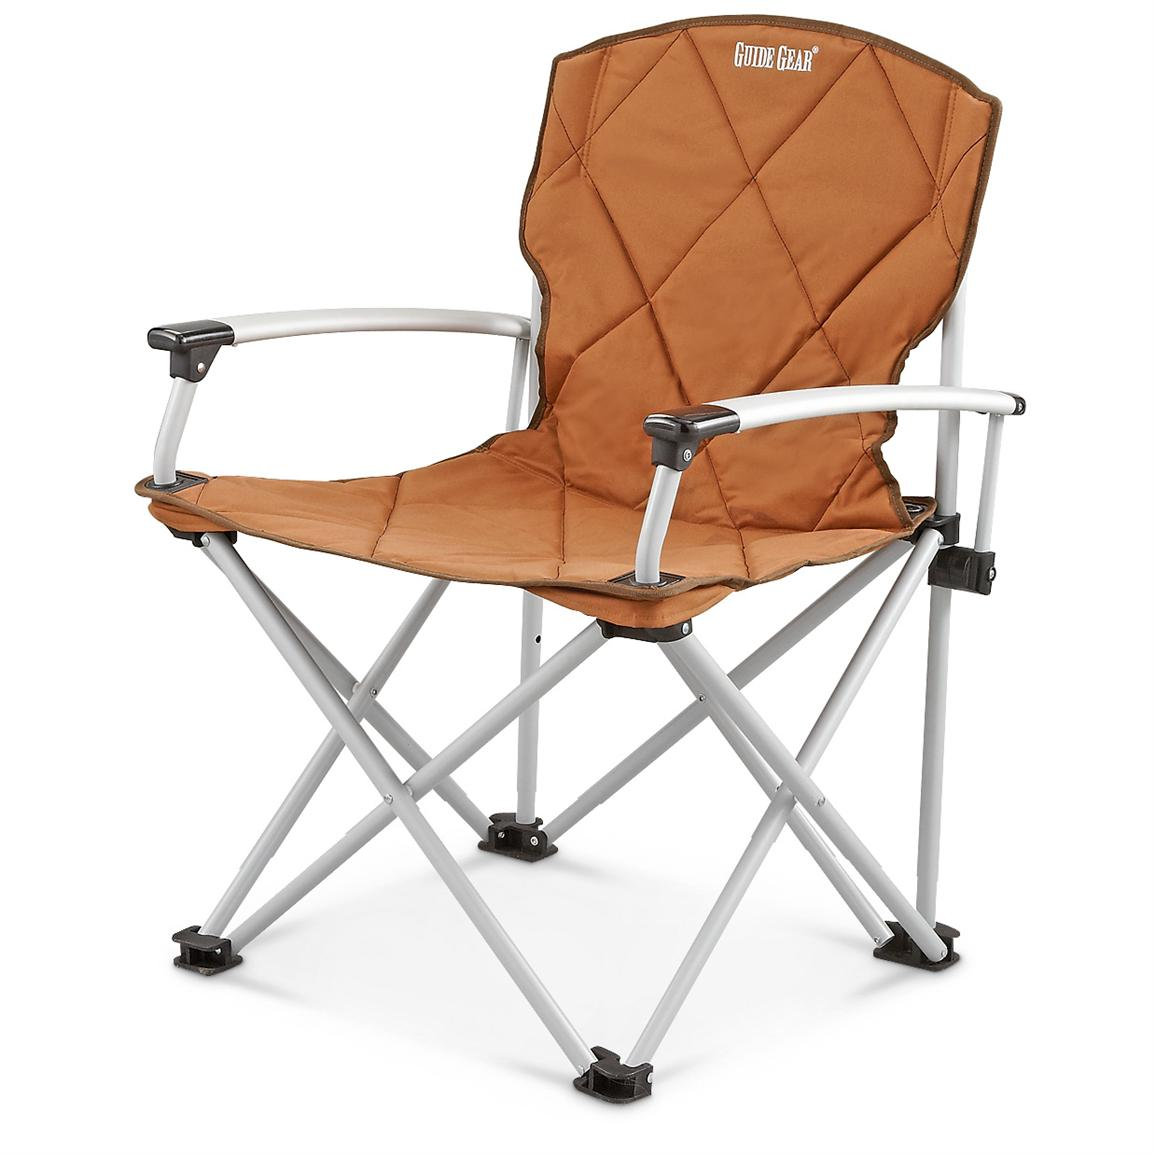 Guide Gear 174 Big Boy Arm Chair 216097 Chairs At